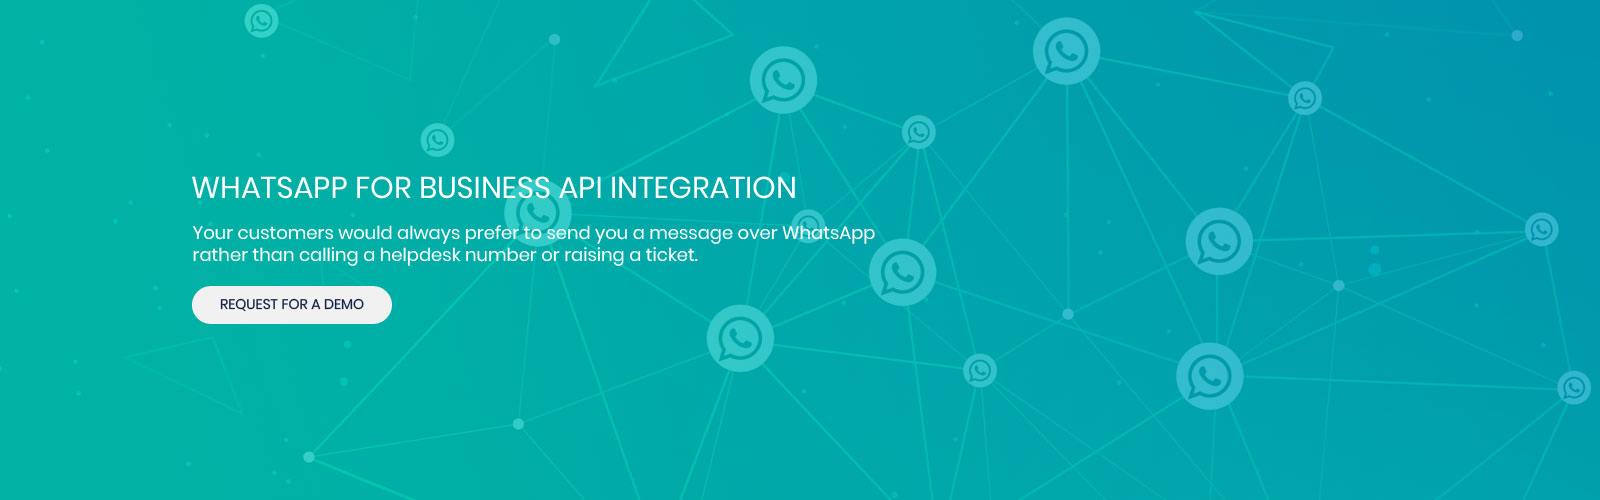 Whatsapp Api Integration Company In Dubai Webotix